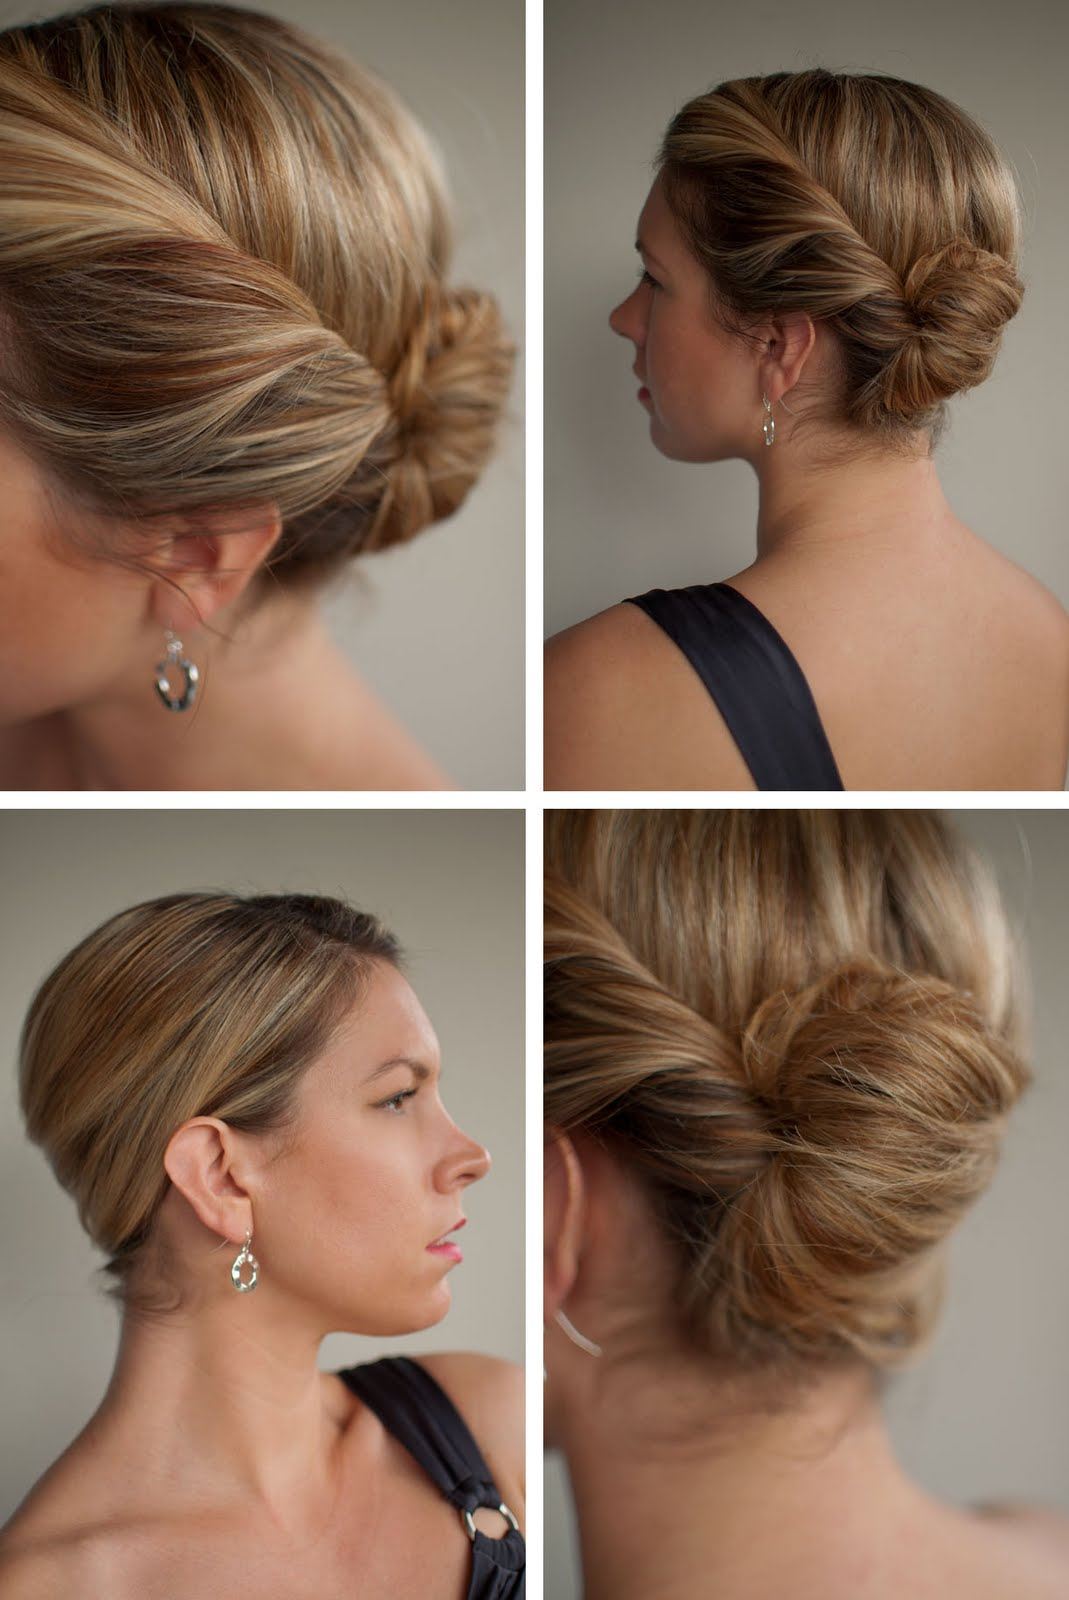 ... do this hairstyle check out my ebook 30 days of twist pin hairstyles